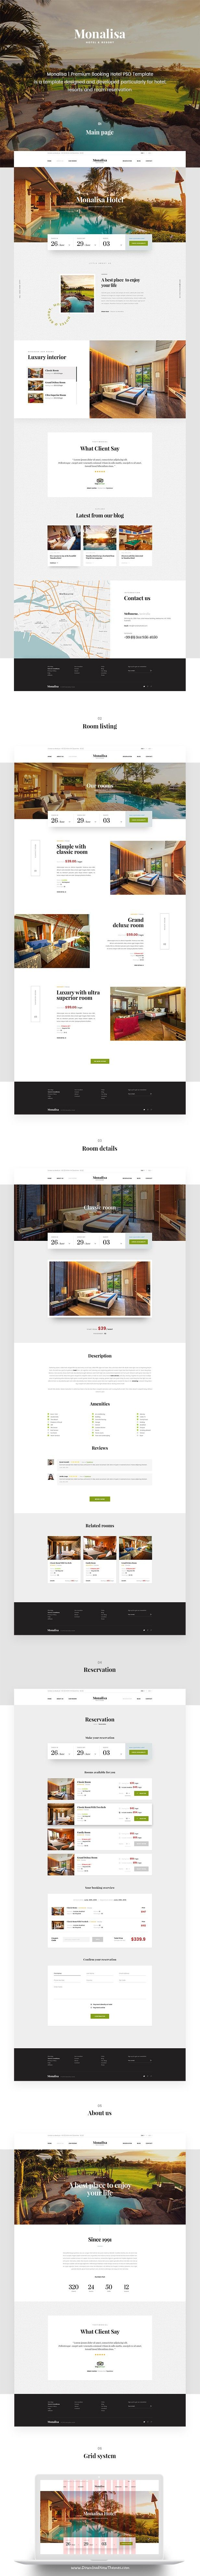 Monalisa is modern and elegant premium #PSD Template designed for #hotel, #resorts and room reservation website download now➯ https://themeforest.net/item/monalisa-premium-booking-hotel-psd-template/16889515?ref=Datasata